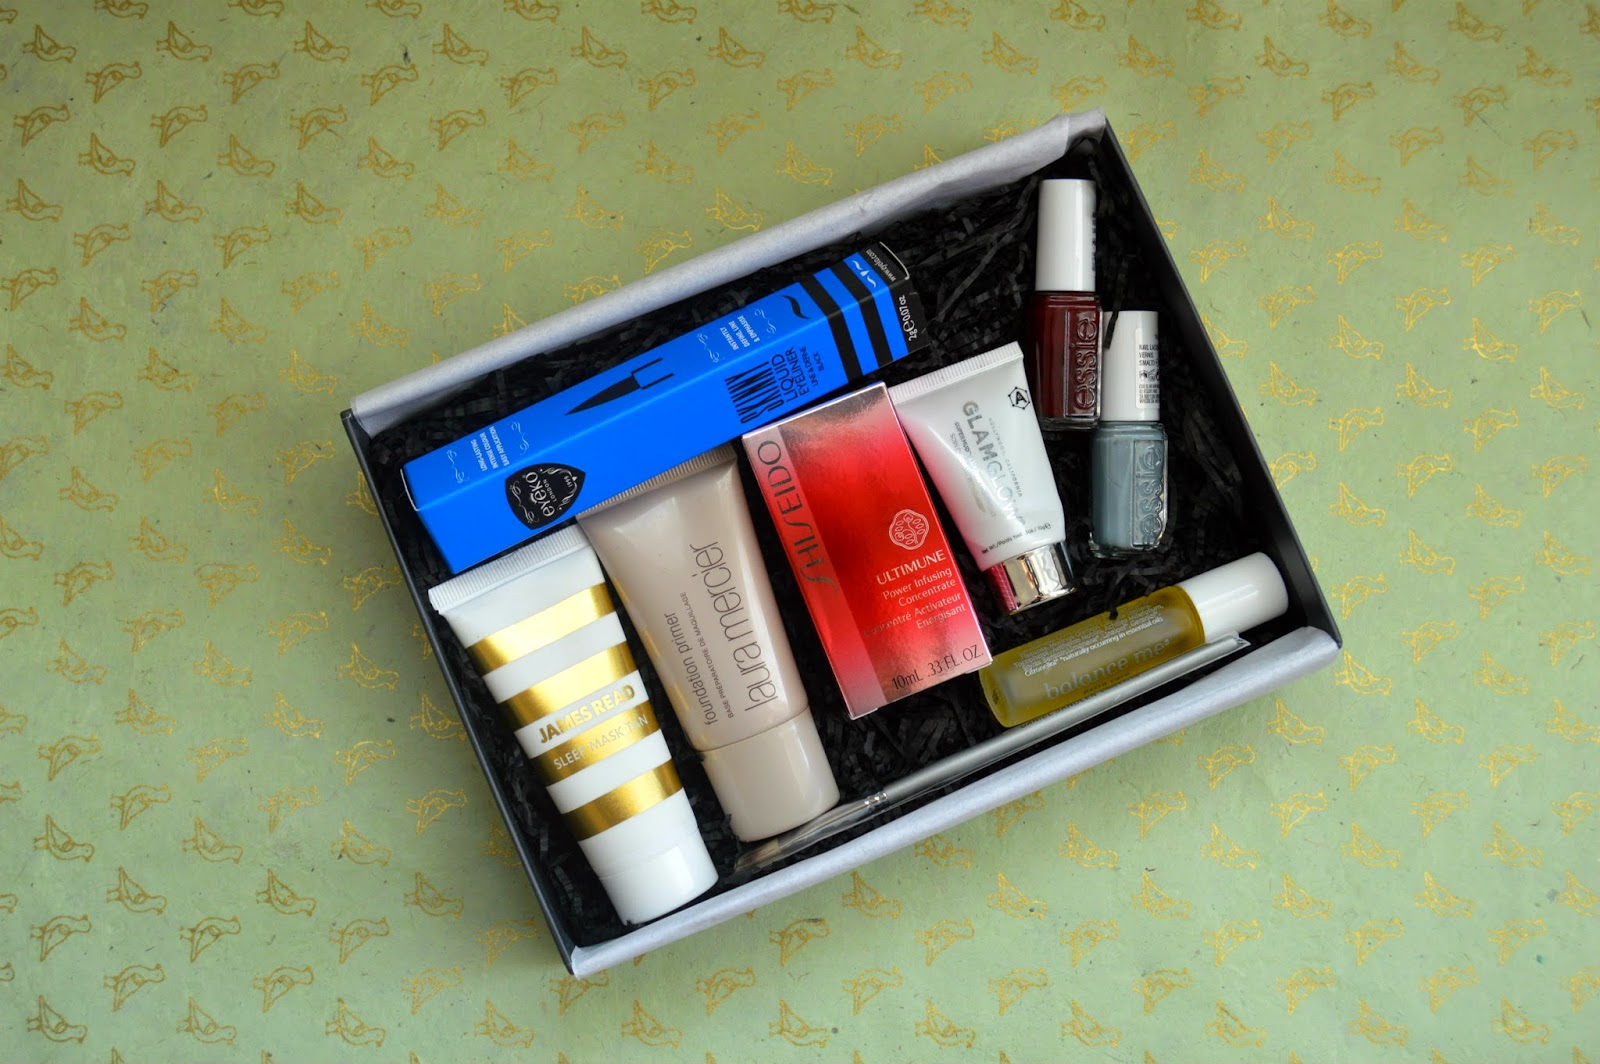 lATEST IN bEAUTY gET THE gLOSS bEAUTY iNSIDER bOX